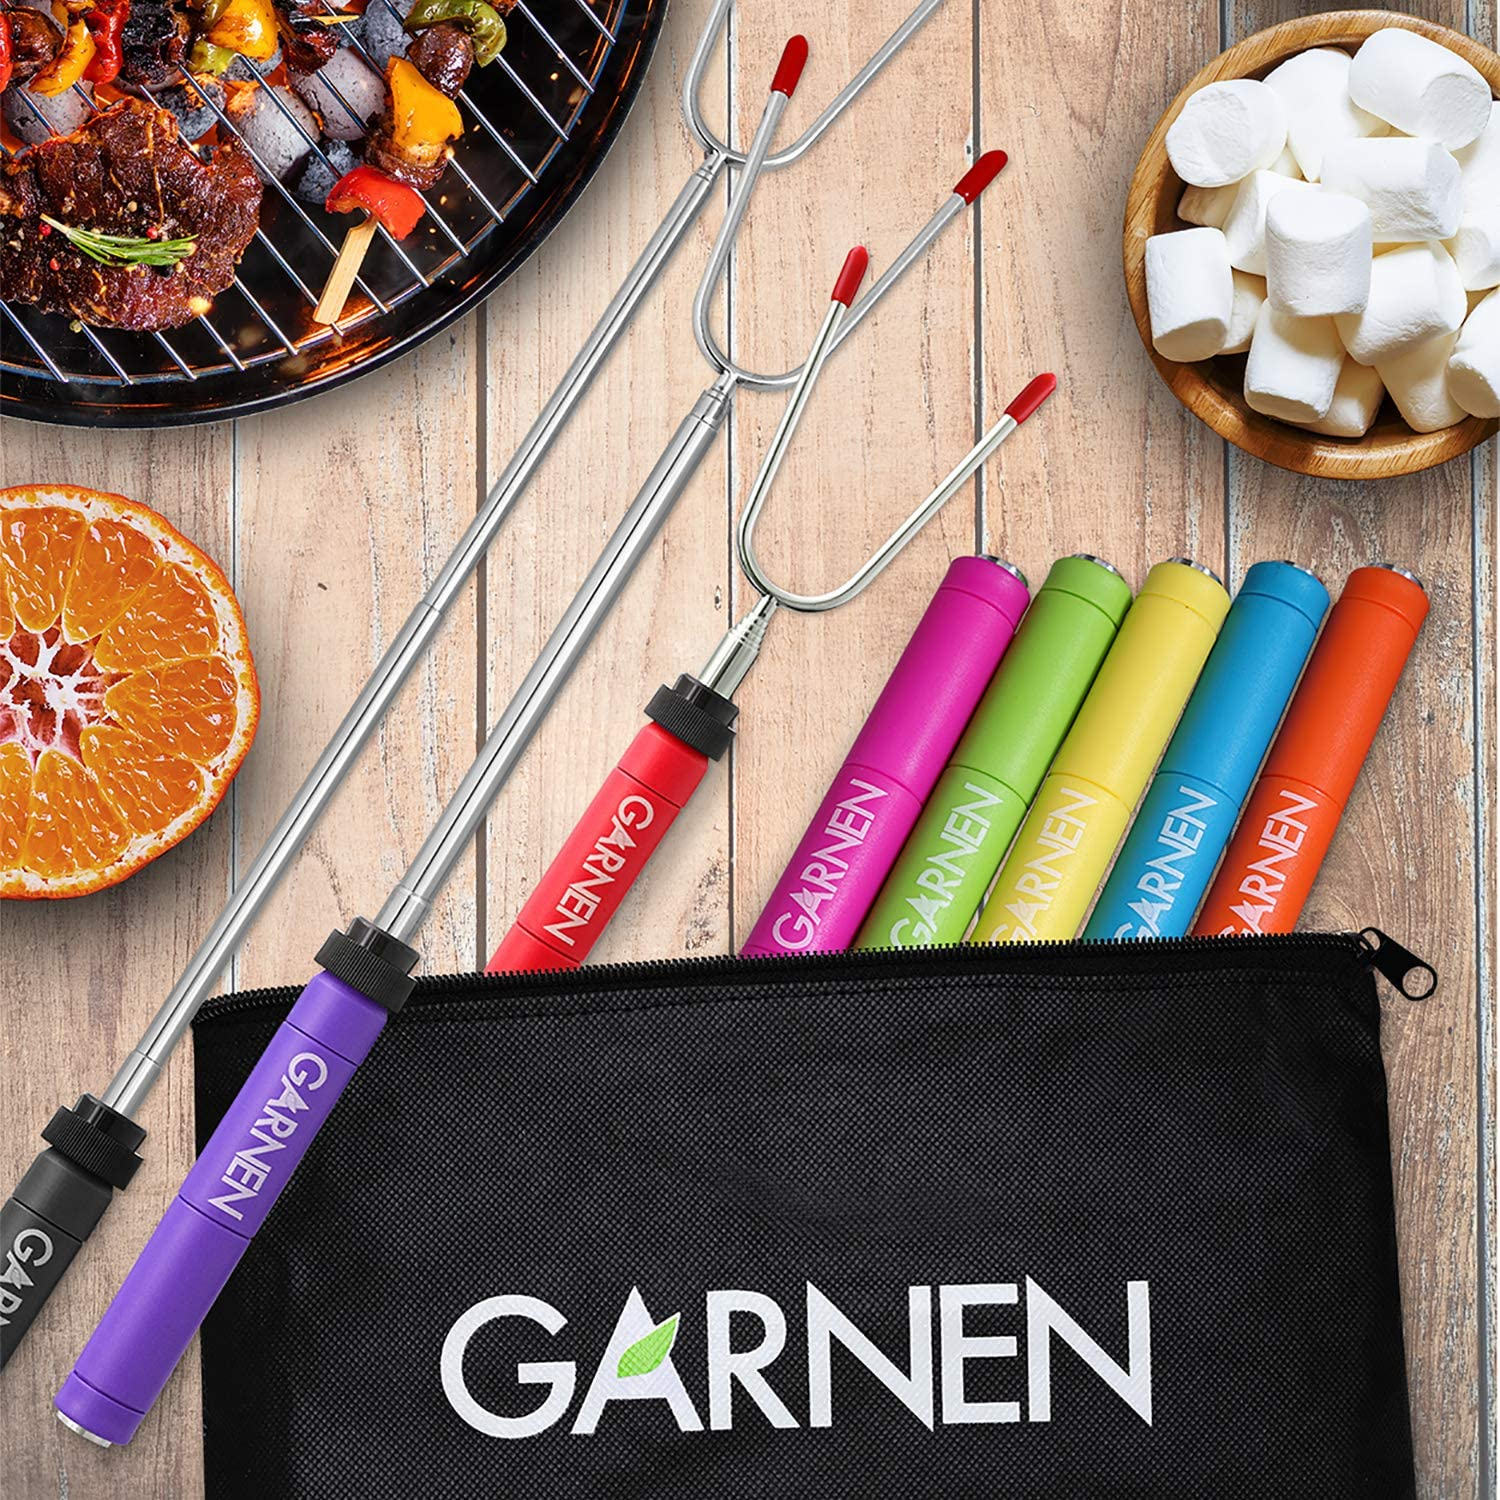 Garnen BBQ Marshmallow Roasting Smores Sticks with Pouch (8 Packs), 34 inch Extendable Rotating Stainless Steel Skewer Fork with Plastic Handle for Kids Camping Grill Campfire Firepit: Computers & Accessories